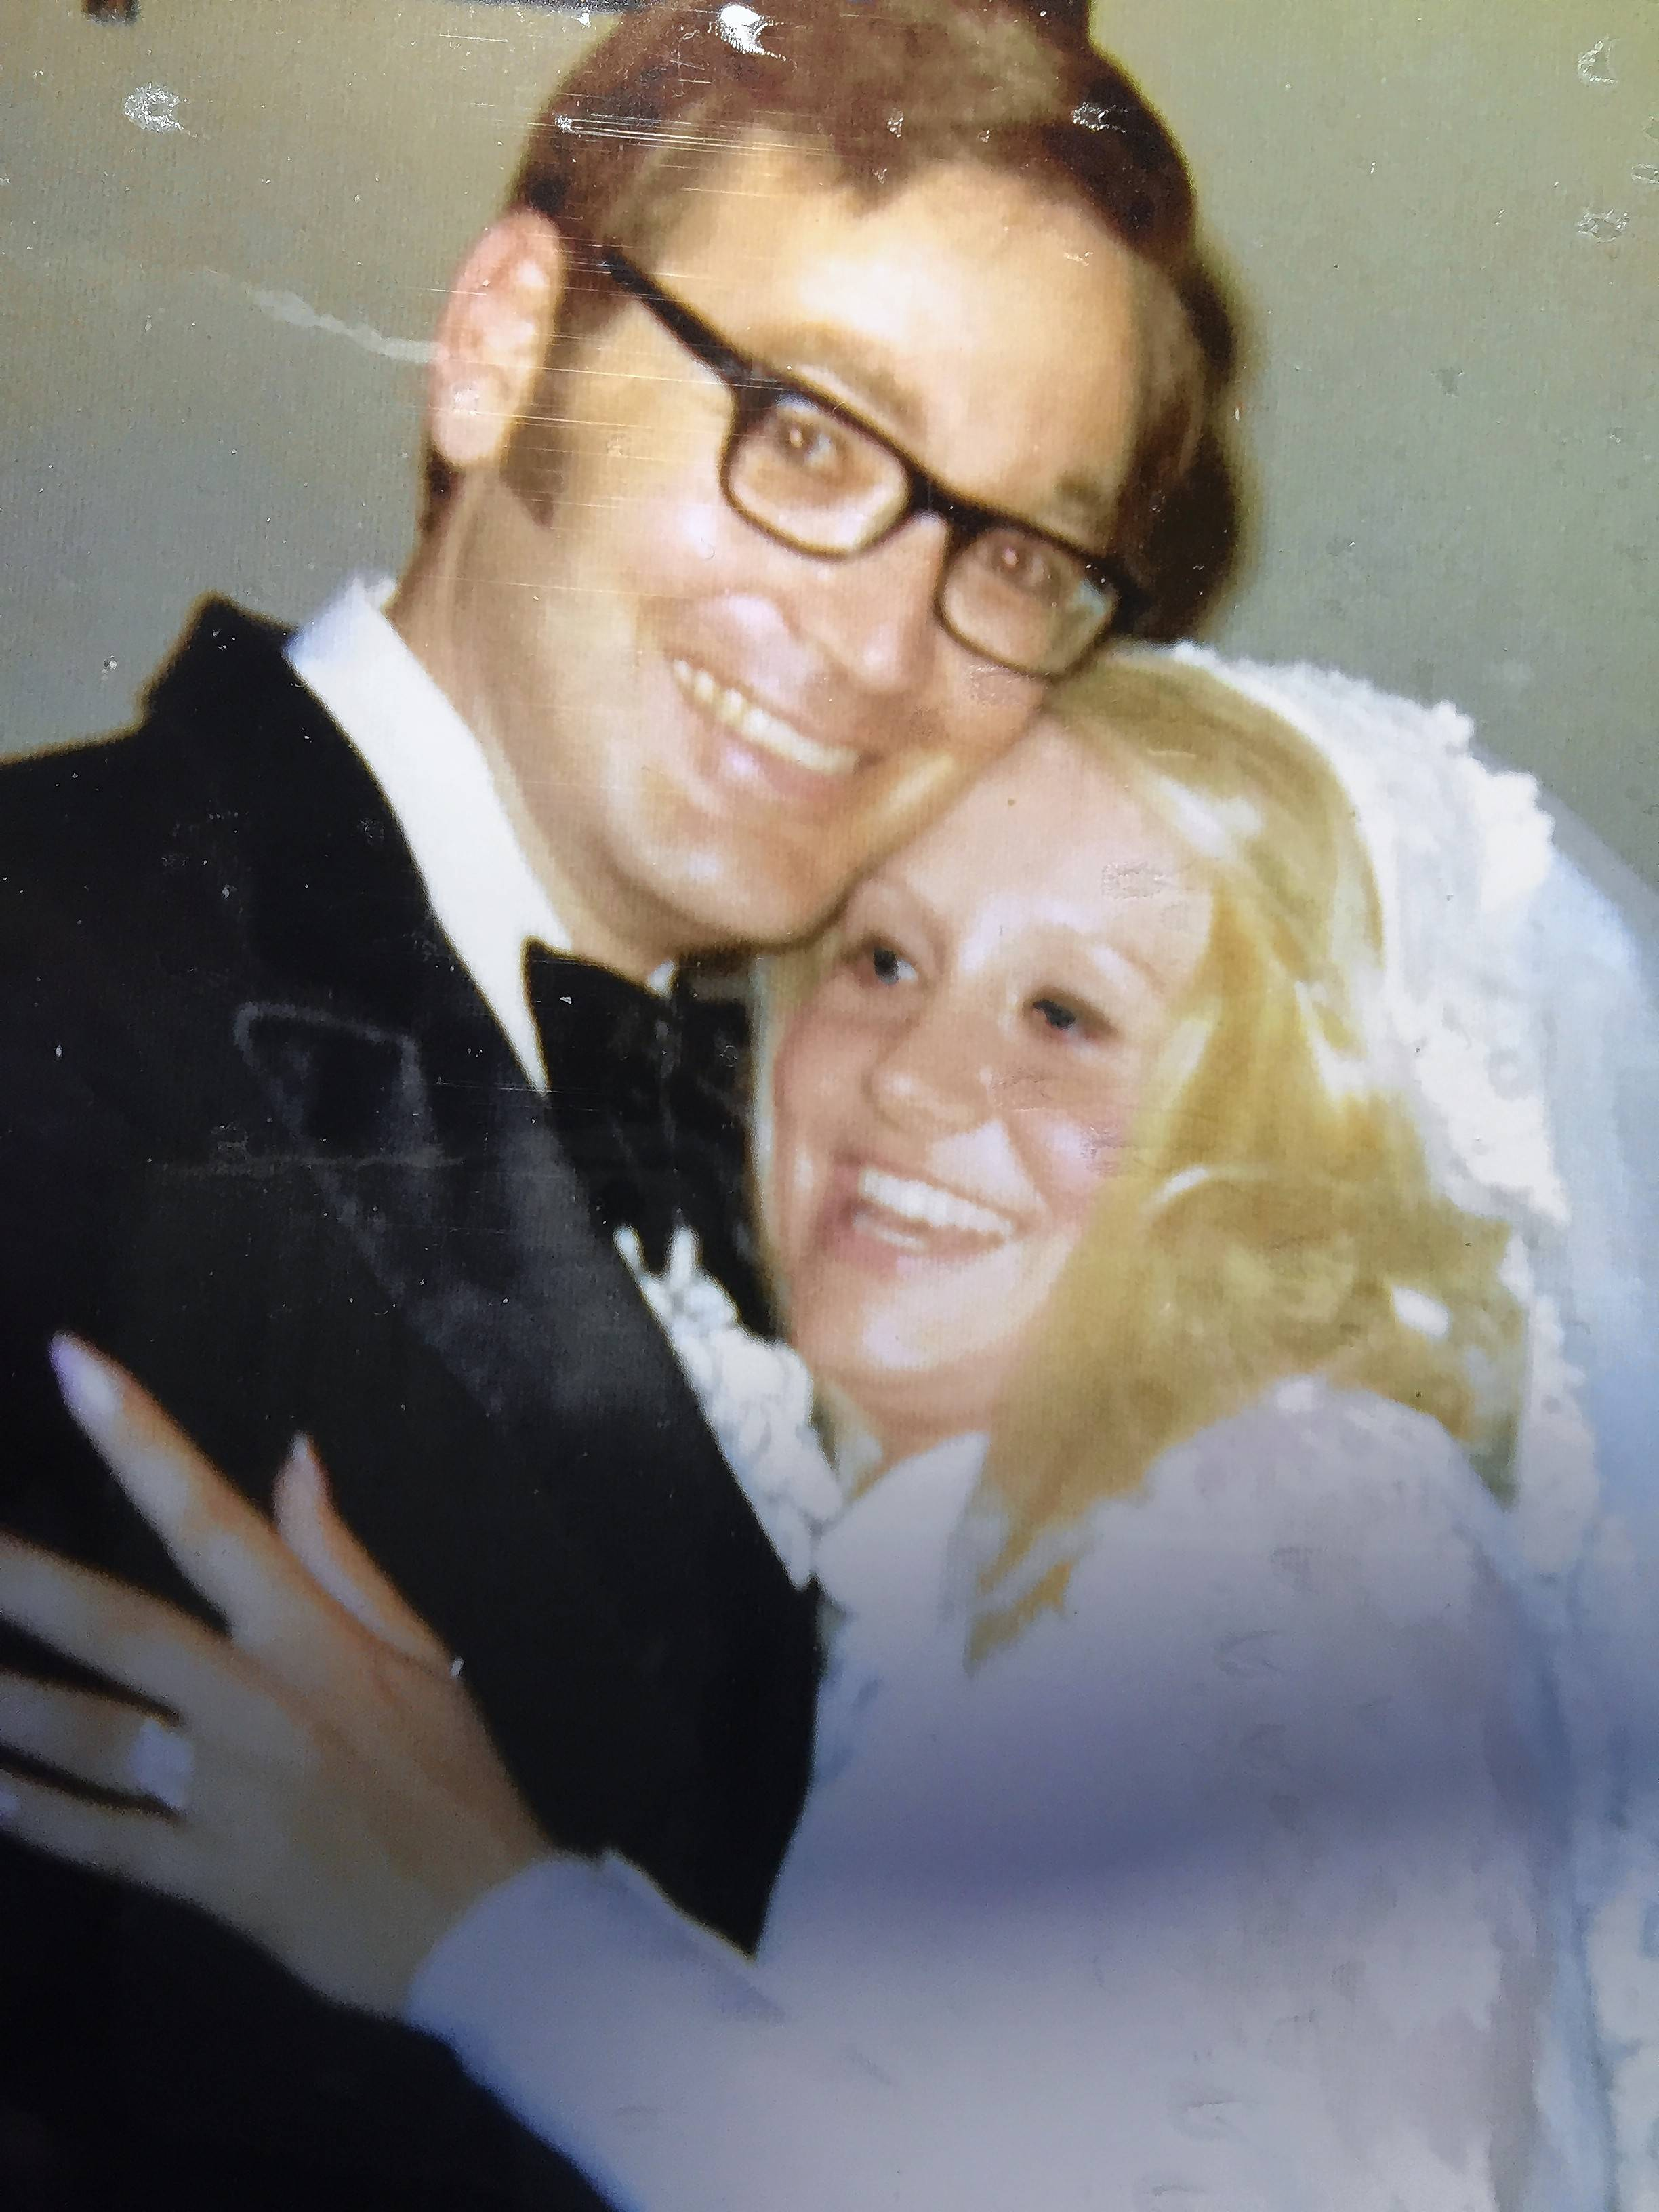 Less than a month after Donnie Rudd and Noreen Kumeta wed in 1973, Noreen died along a Barrington Hills road in what was ruled an accident. On Thursday, Rudd was sentenced to 75 to 150 years in prison for murdering her.